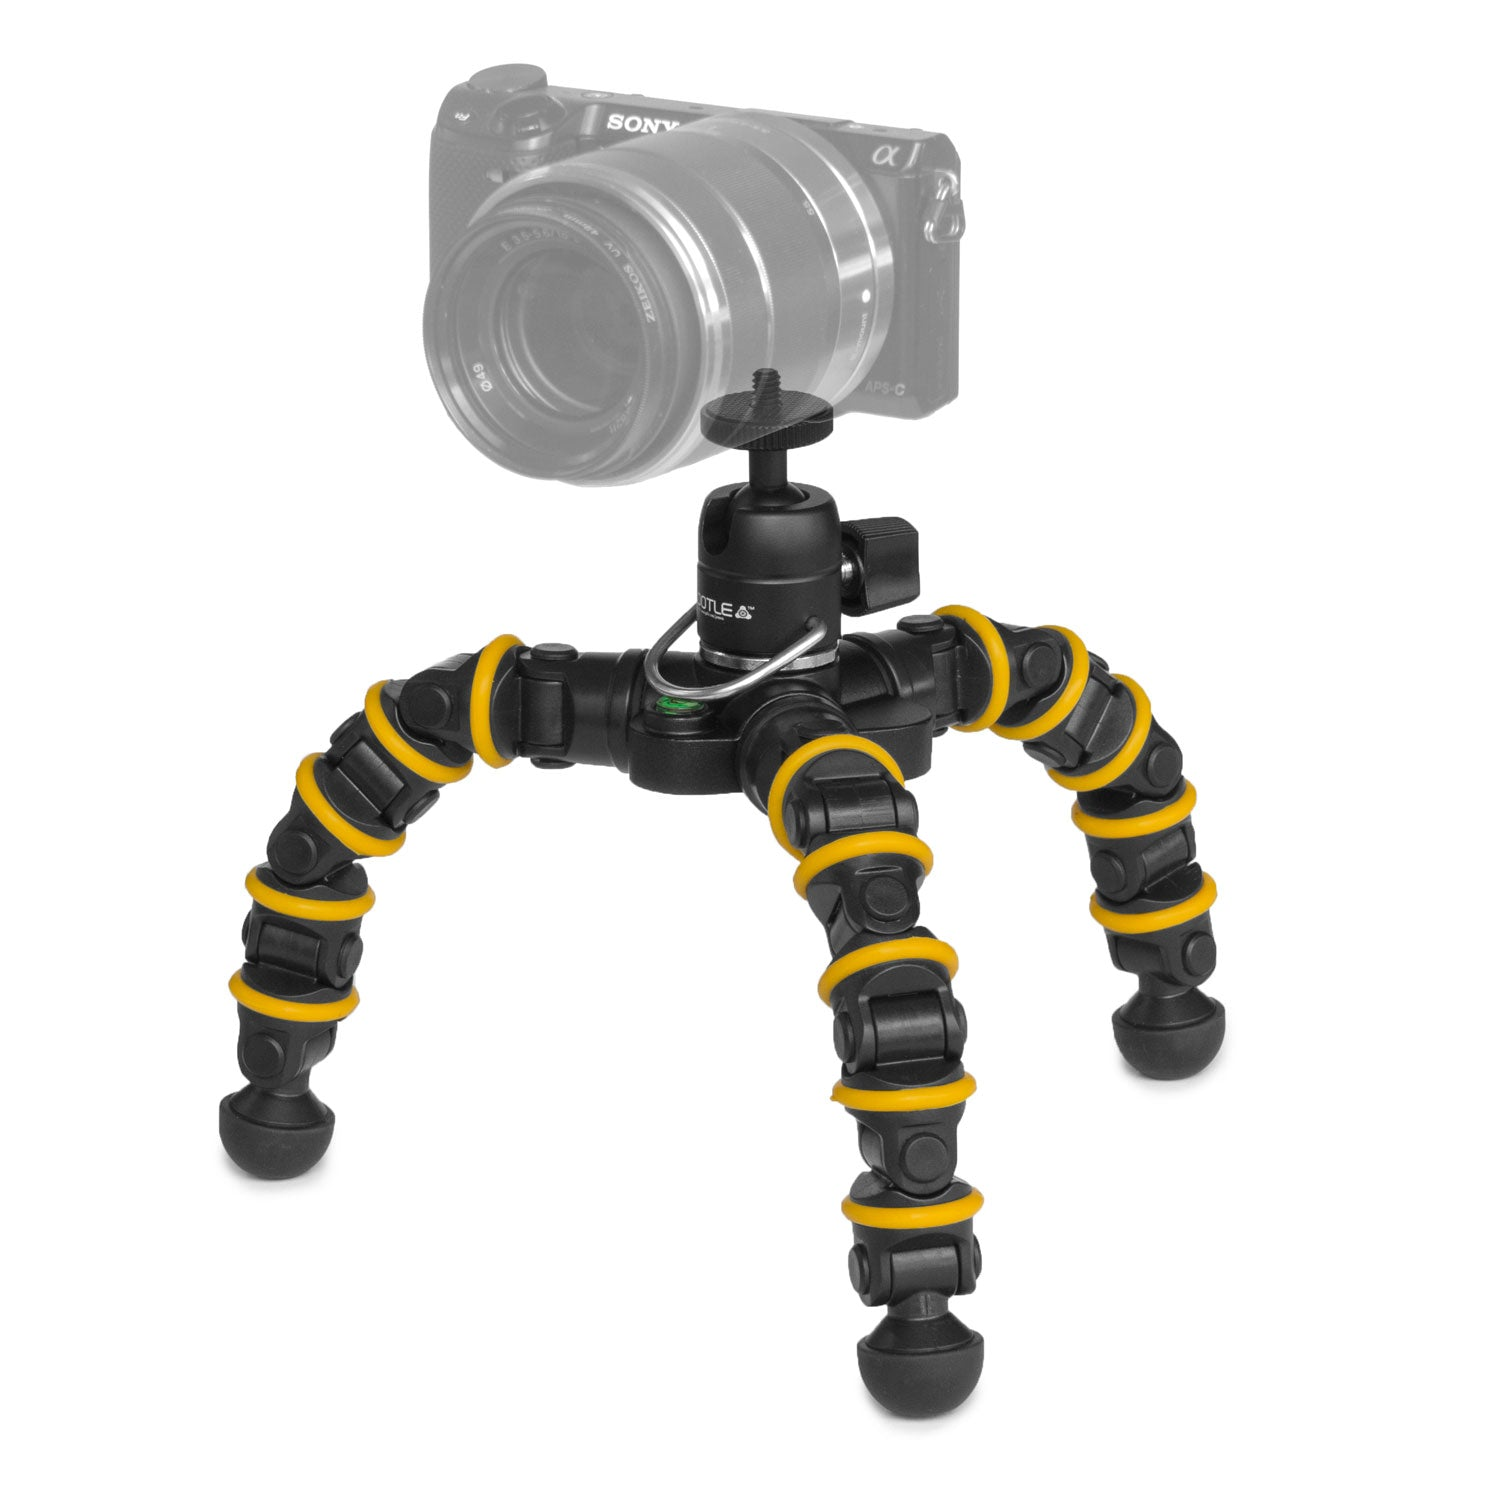 Grifiti Nootle Recon 6 Camera Video Flexpod Flexible Mount Desktop Travel Tripod - Grifiti